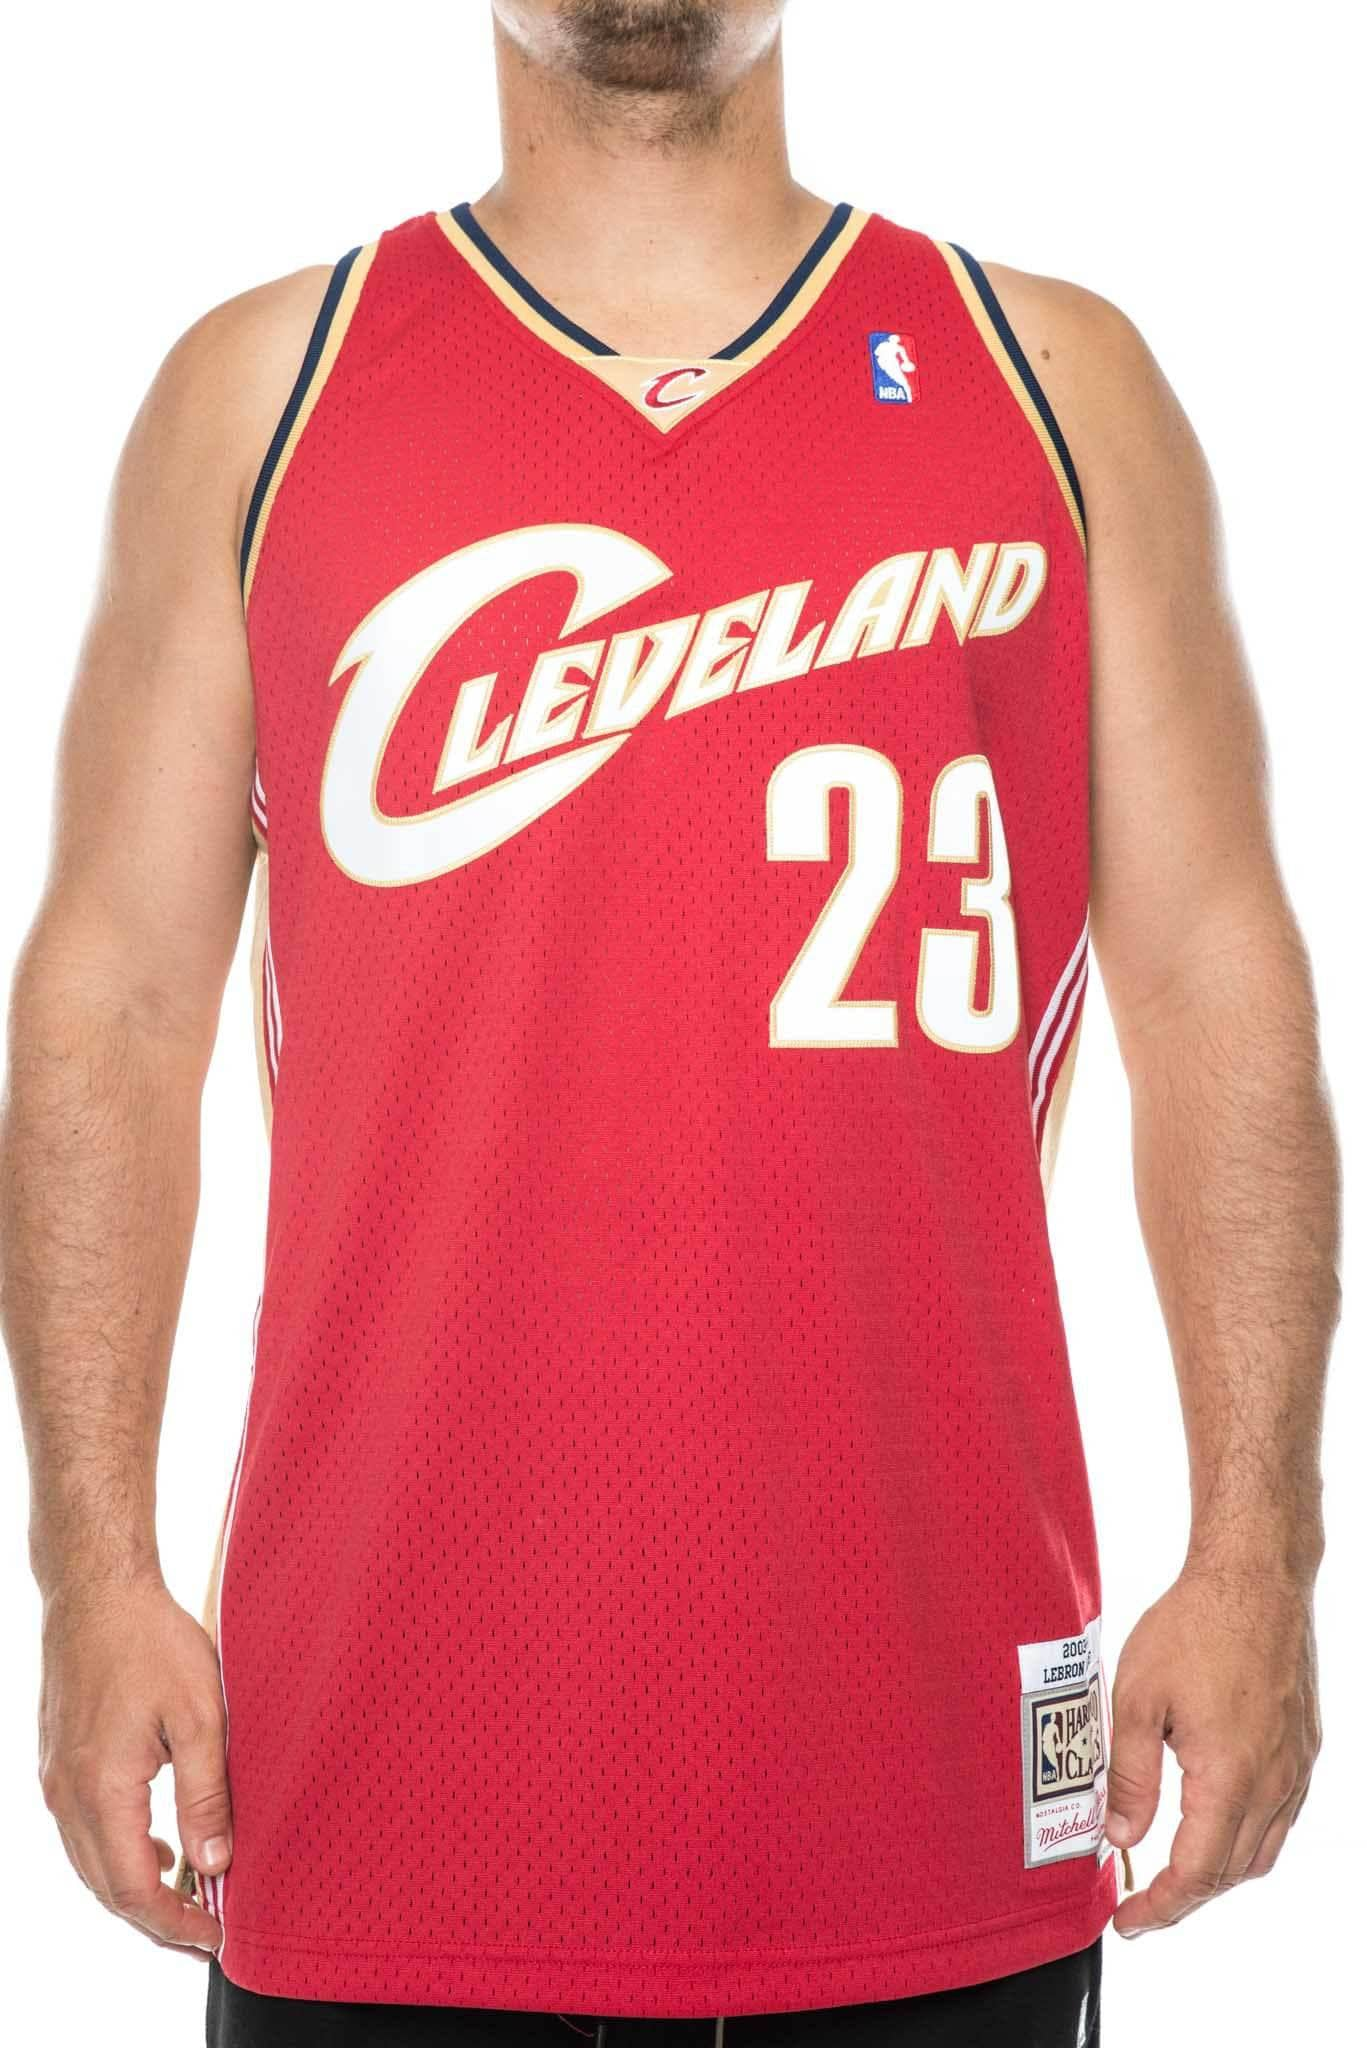 super popular 13e6d 2ab36 mitchell and ness lebron james cavaliers 03-04 road swingman jersey